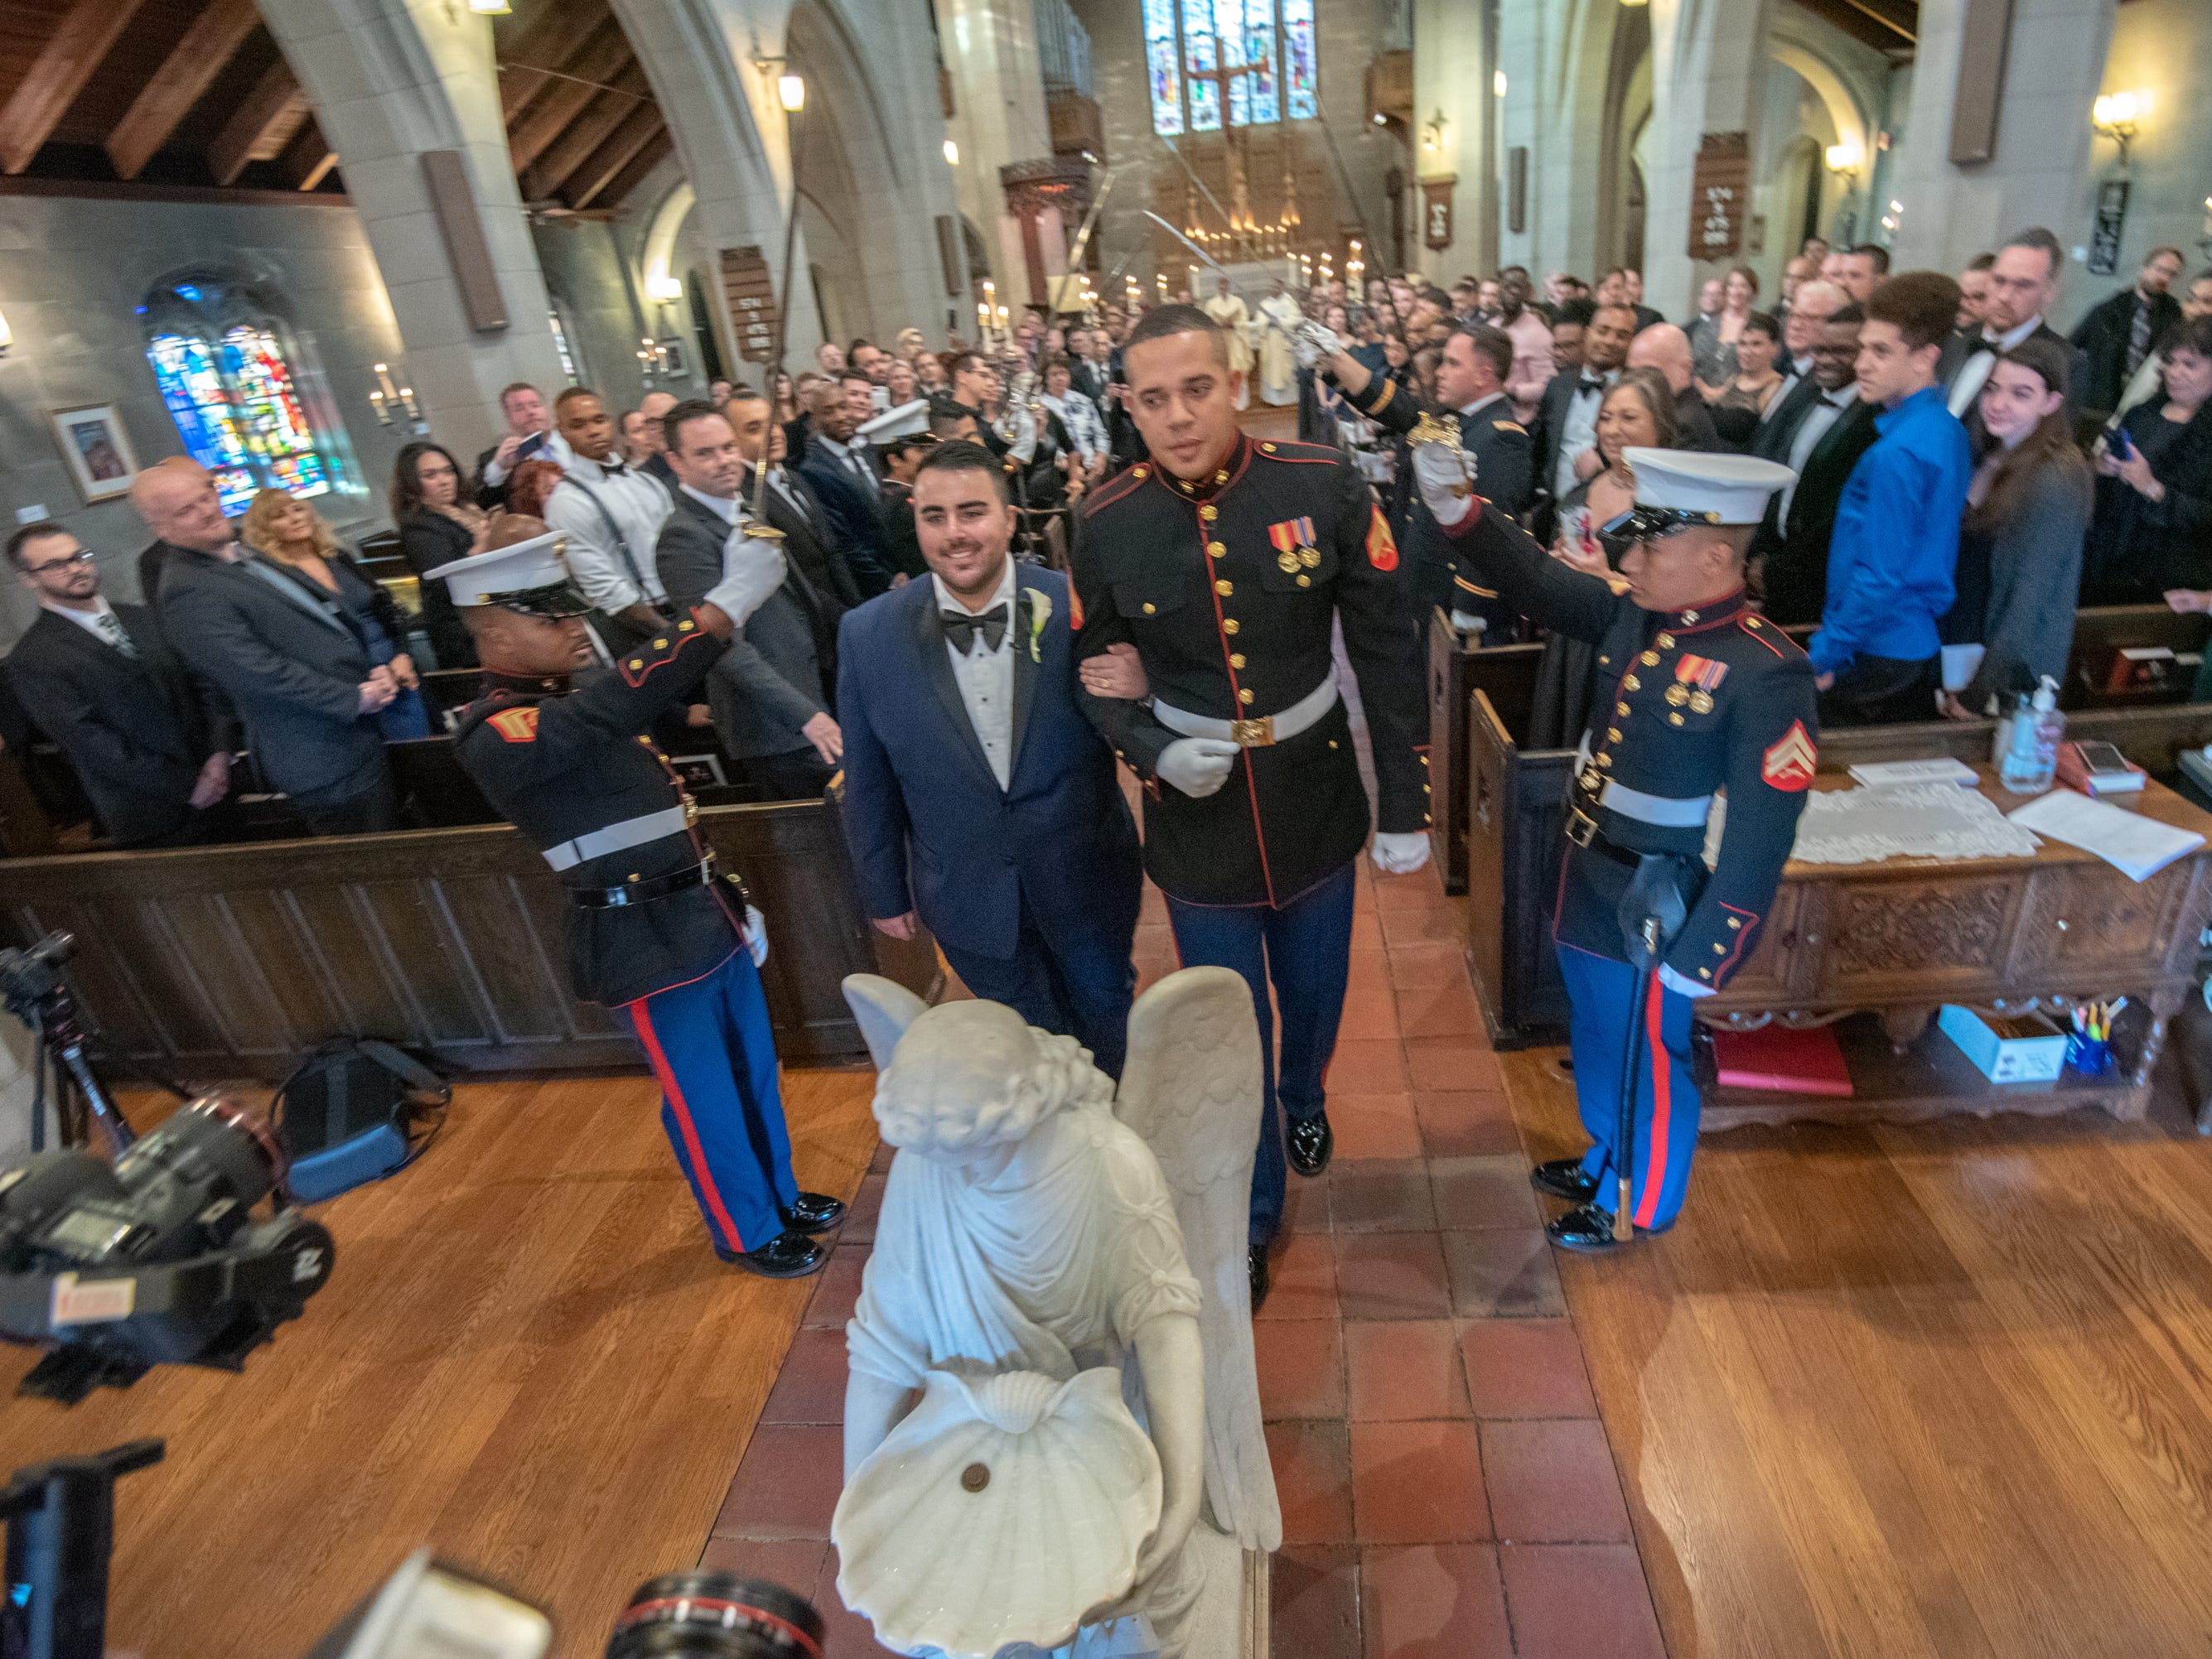 Christian Fuscarino, (left) Executive Director of Garden State Equality, and U.S. Marines Corporal Aaron Williams (in uniform) were married at Trinity Church in Asbury Park on Sunday, November 11, 2018.